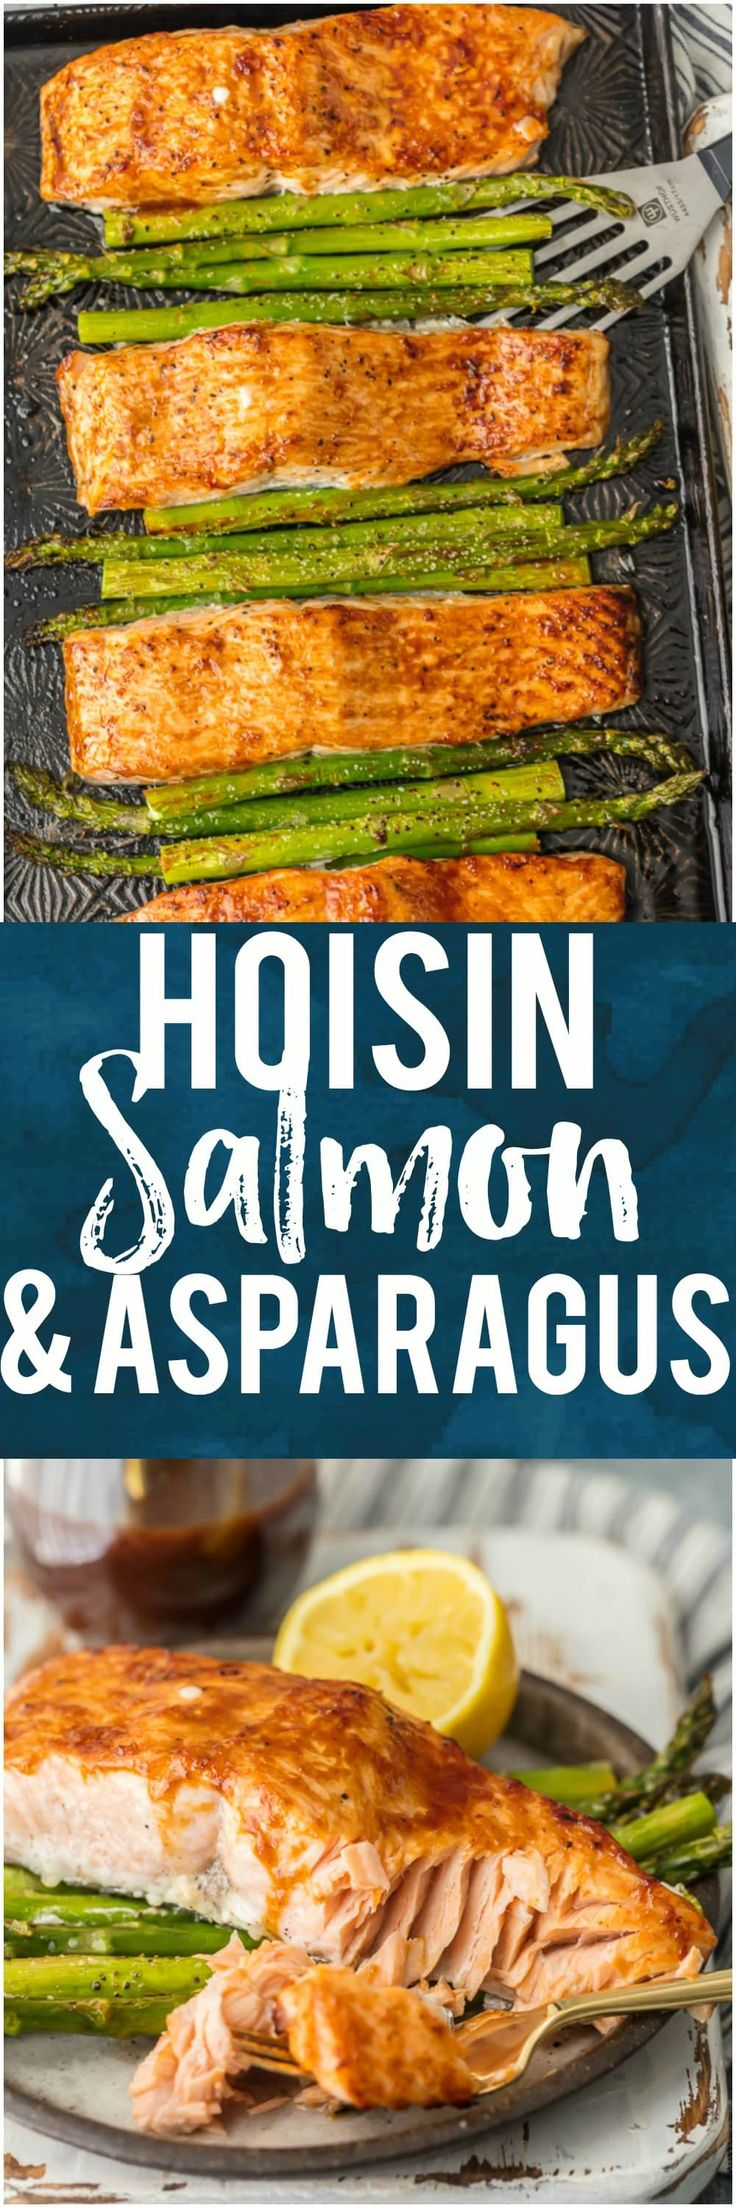 This HOISIN SALMON AND ASPARAGUS RECIPE has it all! It's a simple and healthy seafood recipe made entirely on ONE SHEET PAN. So much flavor and so little prep/cleanup. So much to love about this sheet pan glazed salmon. #seafood #healthy #salmon #sheetpan #onepan via @beckygallhardin